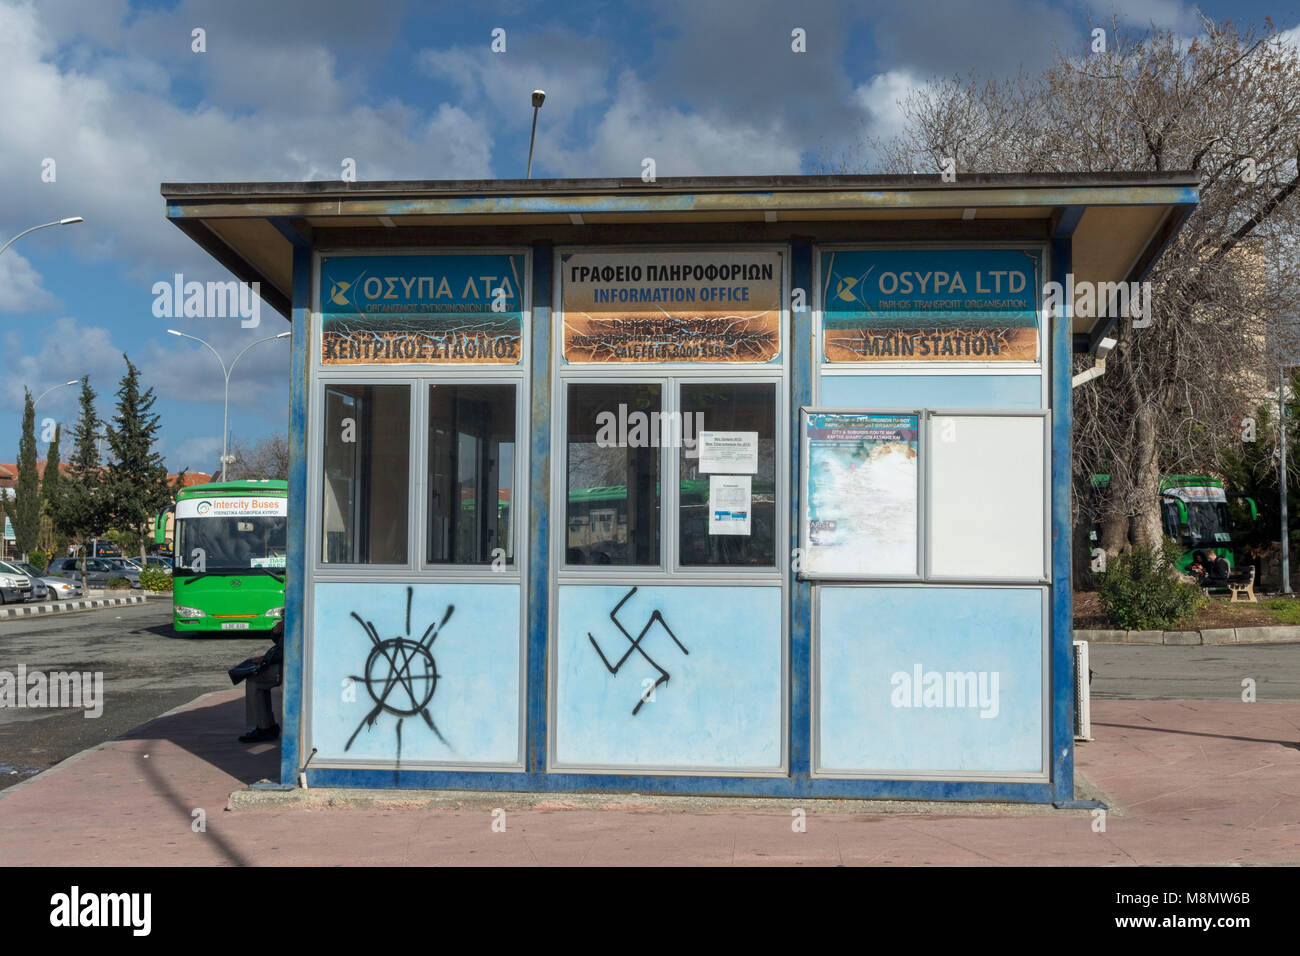 Nazi insignia on the side of the Karavella bus station, Paphos, Cyprus, Mediterranean - Stock Image